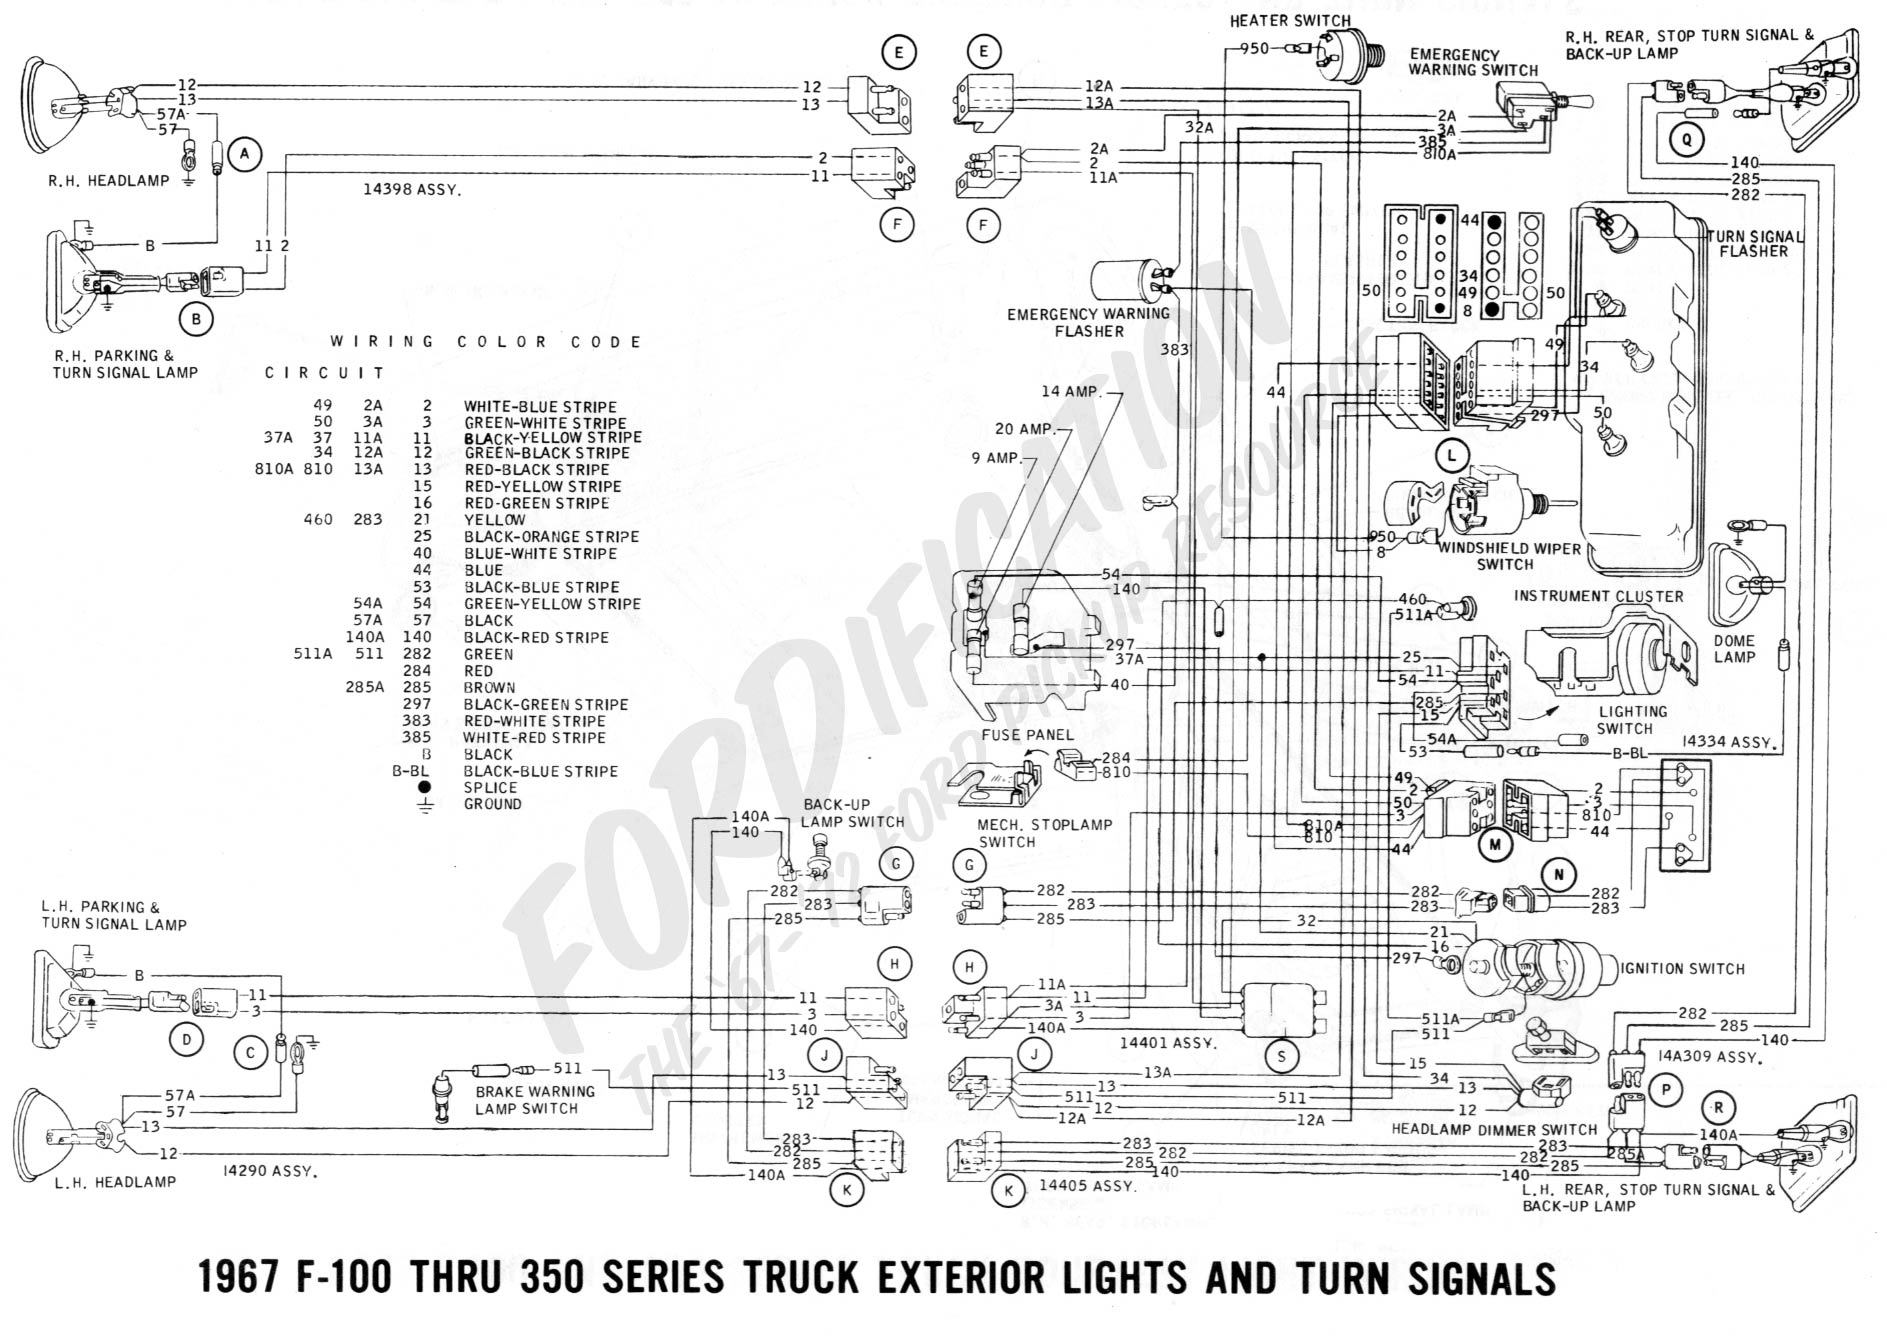 80 1967_exterior_lights_and_turn_signals_page_2_1db6c529c4c9567560e56d6320f993290ba5b803 66 mustang wiring diagram 1966 mustang dash wiring diagram 1969 mustang alternator wiring diagram at gsmportal.co